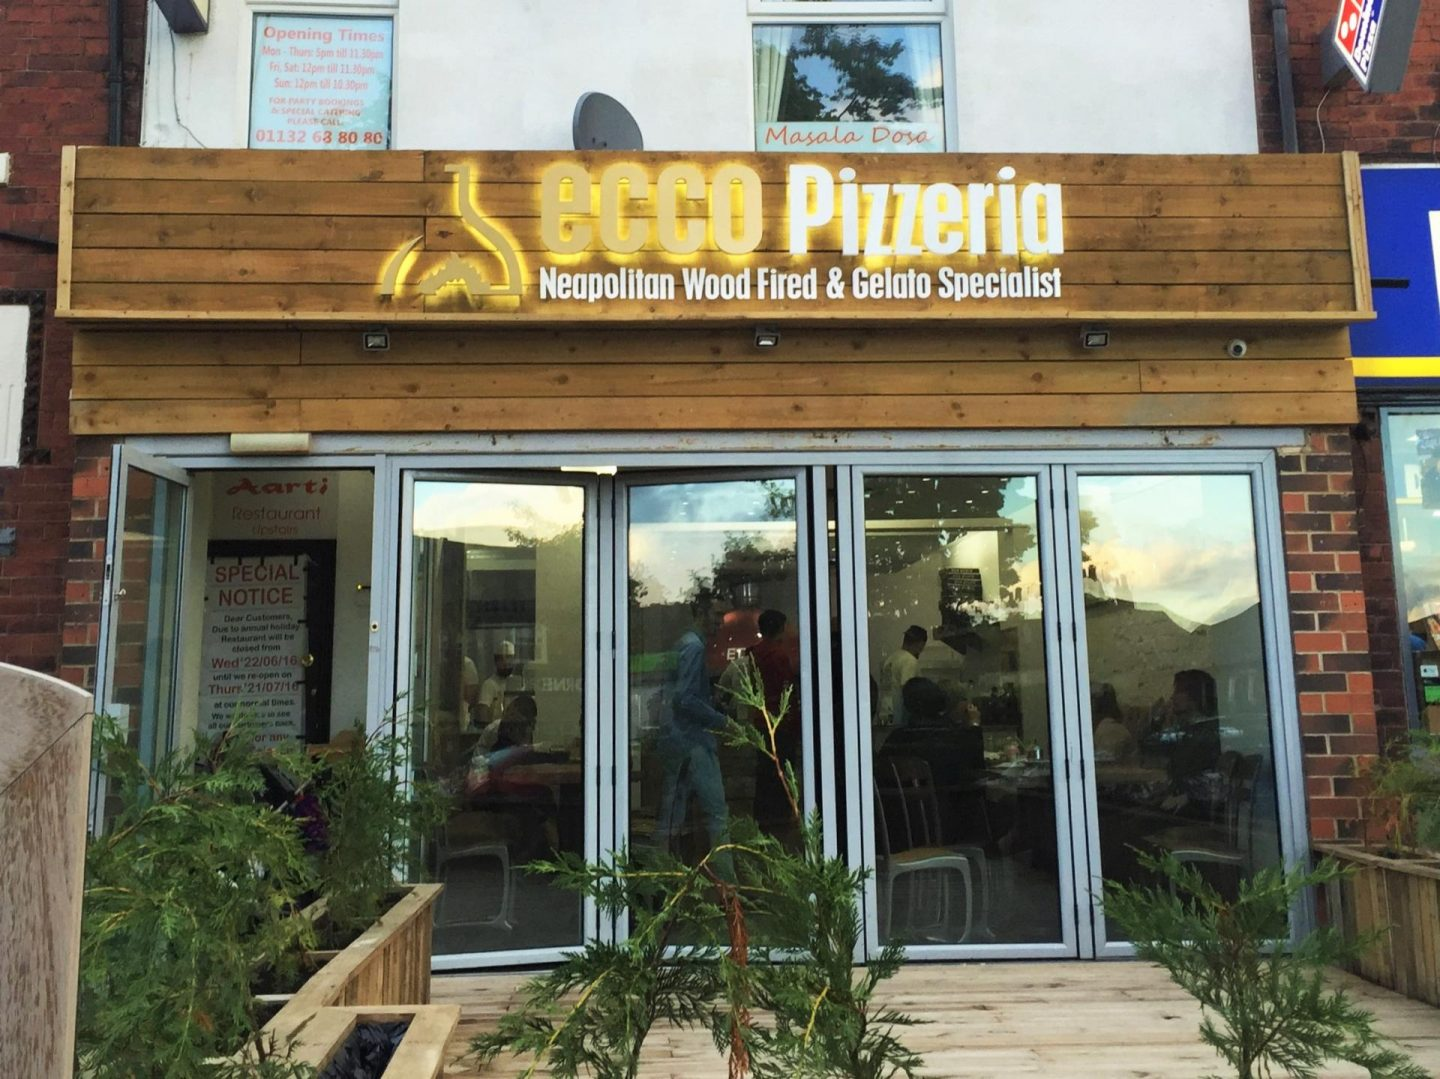 Restaurant Review | Ecco Pizzeria